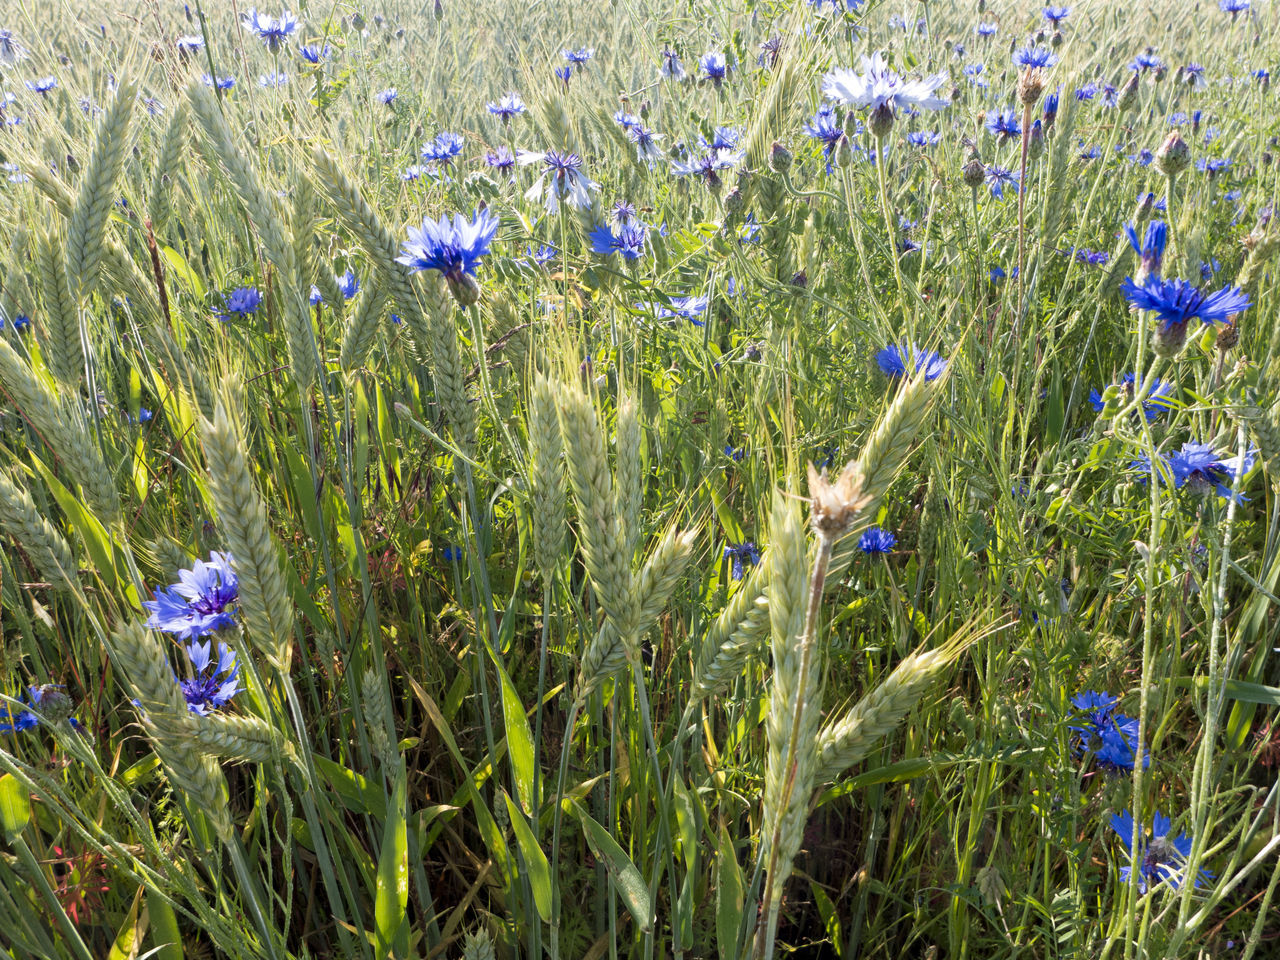 Agriculture Backgrounds Blossom Blue Blue Flowers Bluebottles Cereal Plant Cornflower Cornflower Blue Countryside Cyanus Field Flower Grainfields Green Growth Herb Kornblume Meadow Nature Plant Rural Summer Wild Wildflower